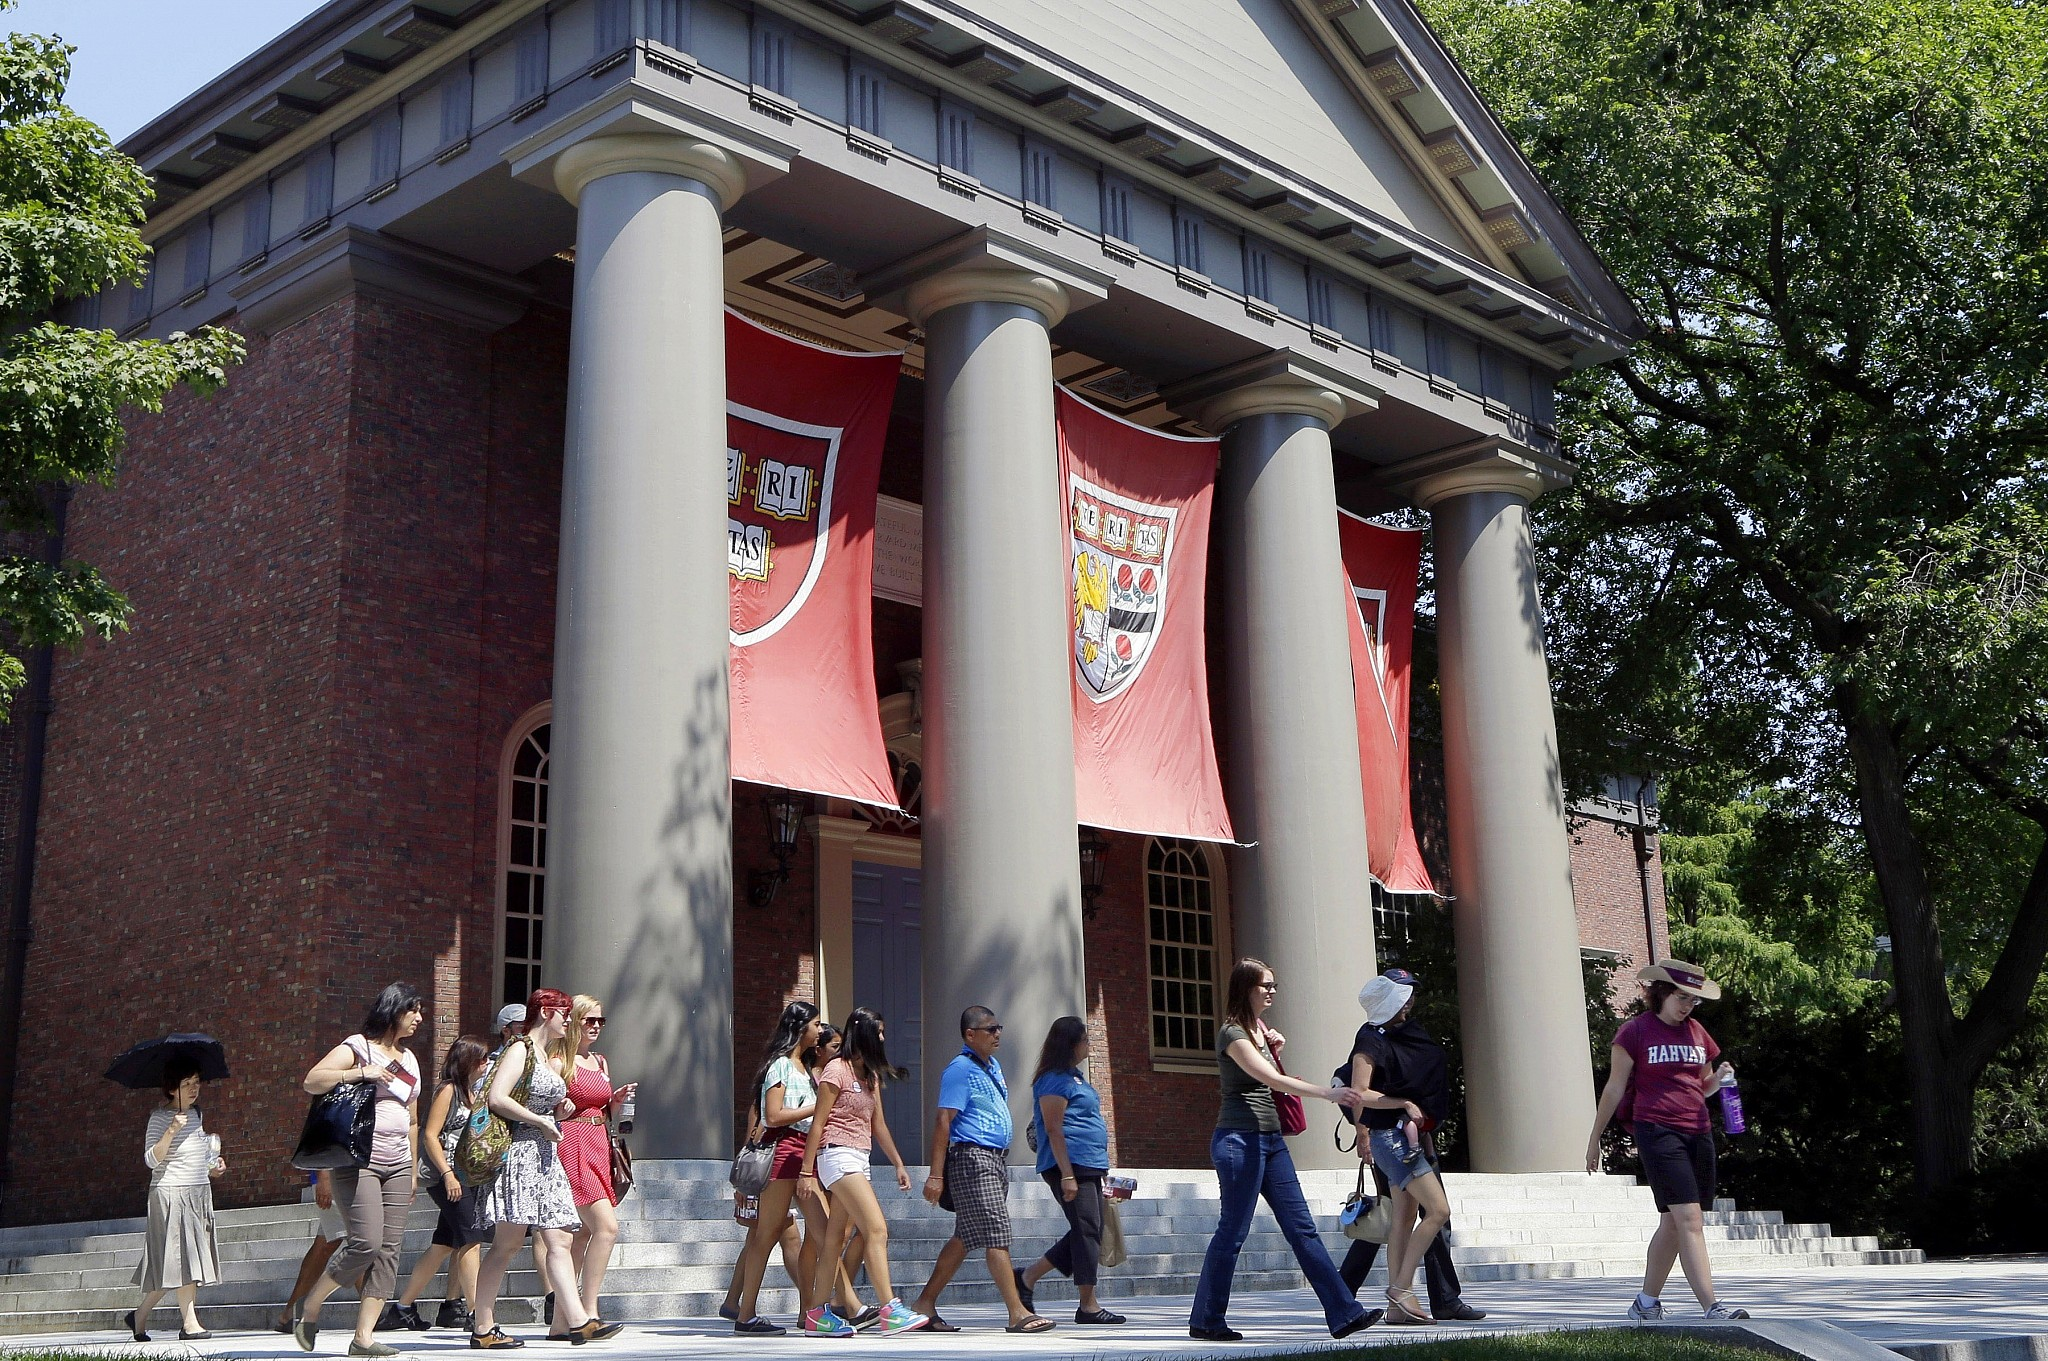 Atour group walks through the campus of Harvard University in Cambridge Mass. Word of an August 2017 Justice Department inquiry into how race factors into admissions at Harvard University has left top-tier colleges bracing for scrutiny of practices that